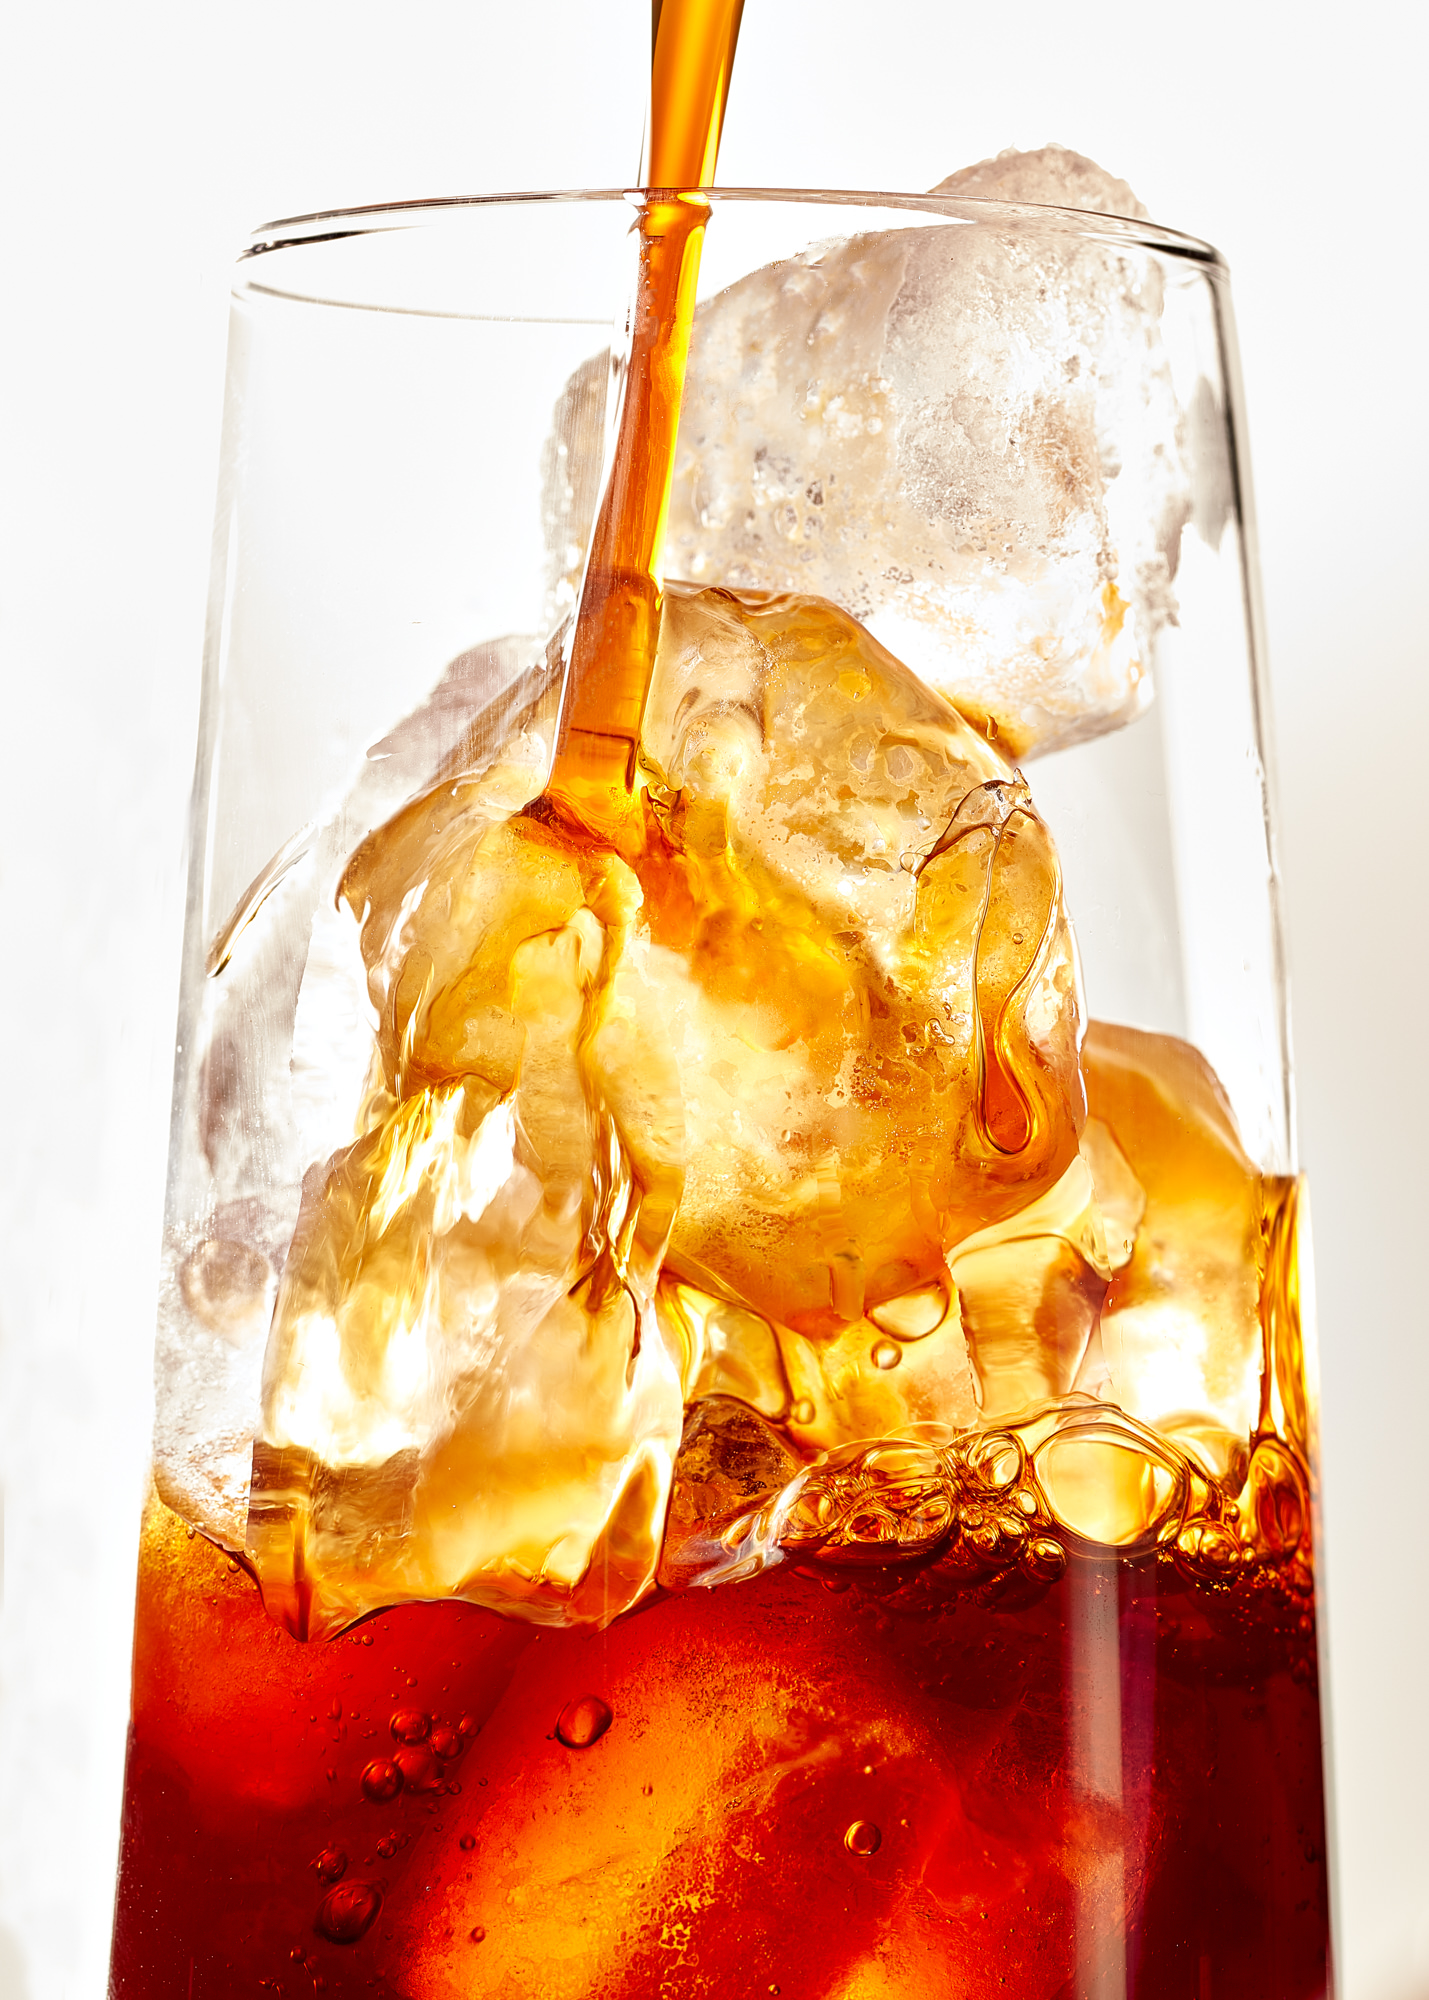 Iced coffee pouring into a glass